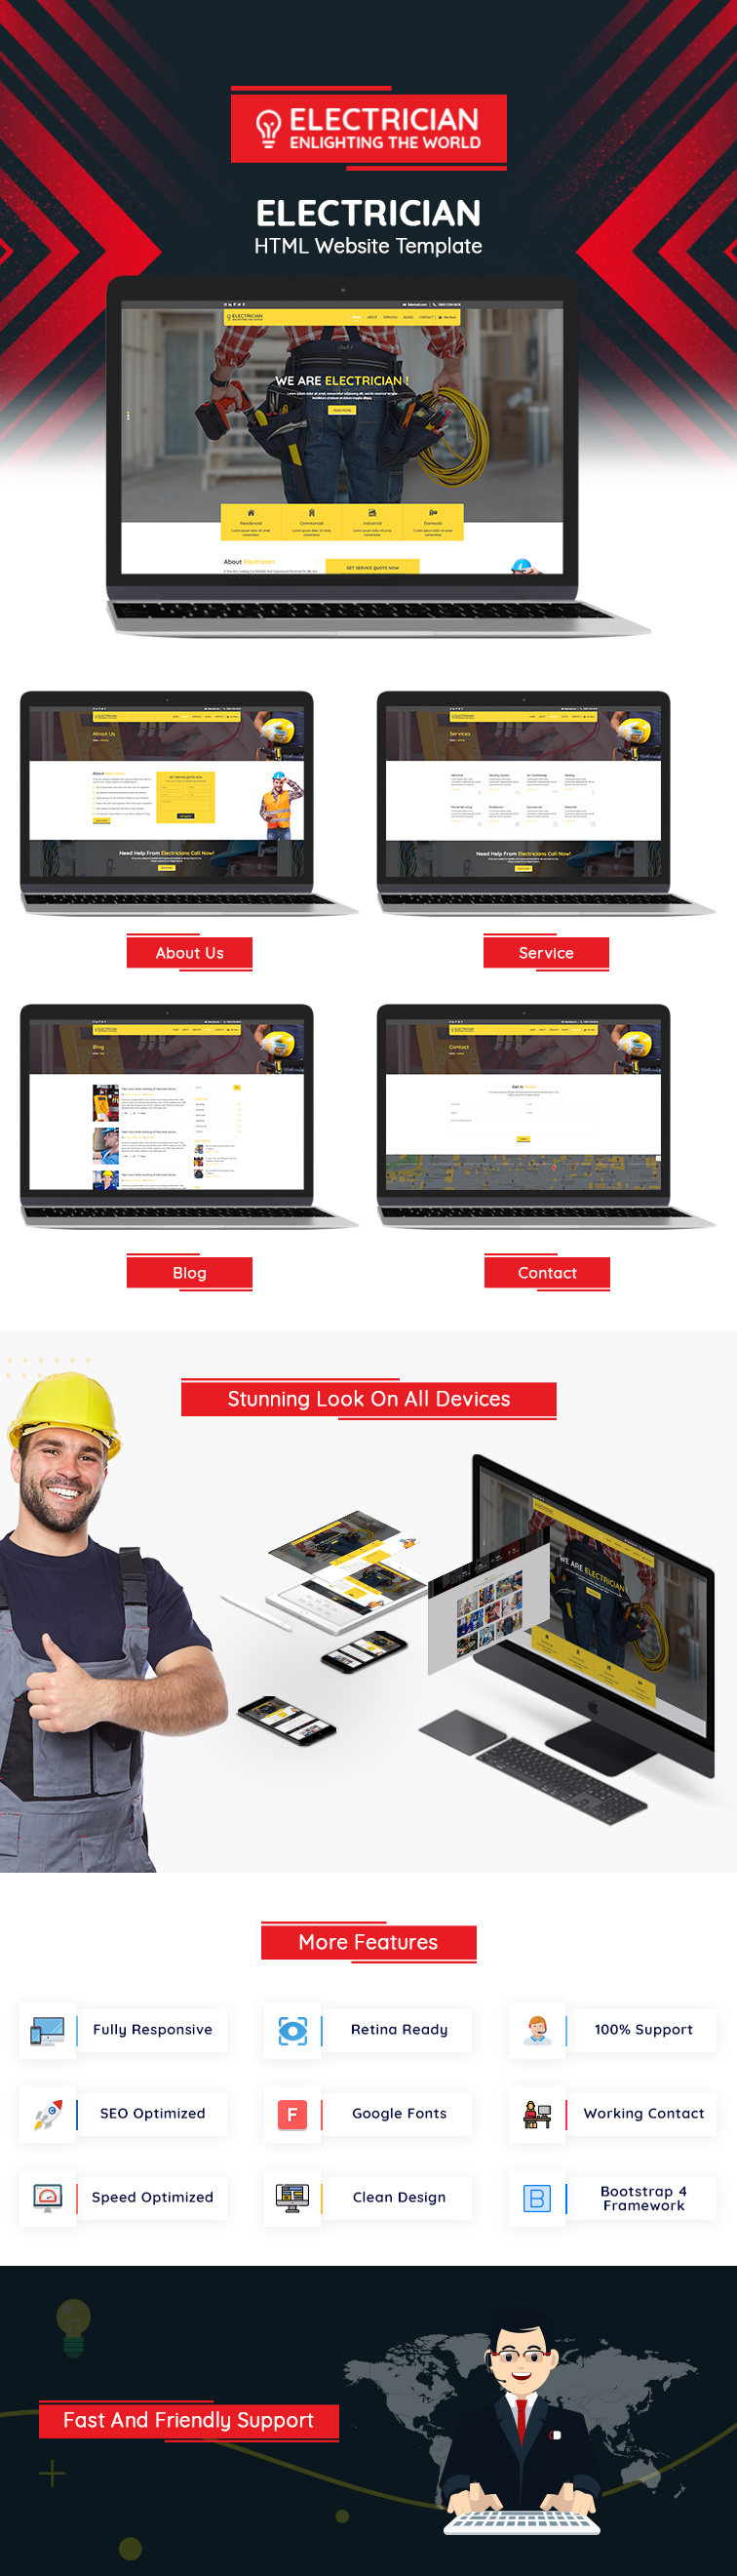 Electrician HTML Website Template